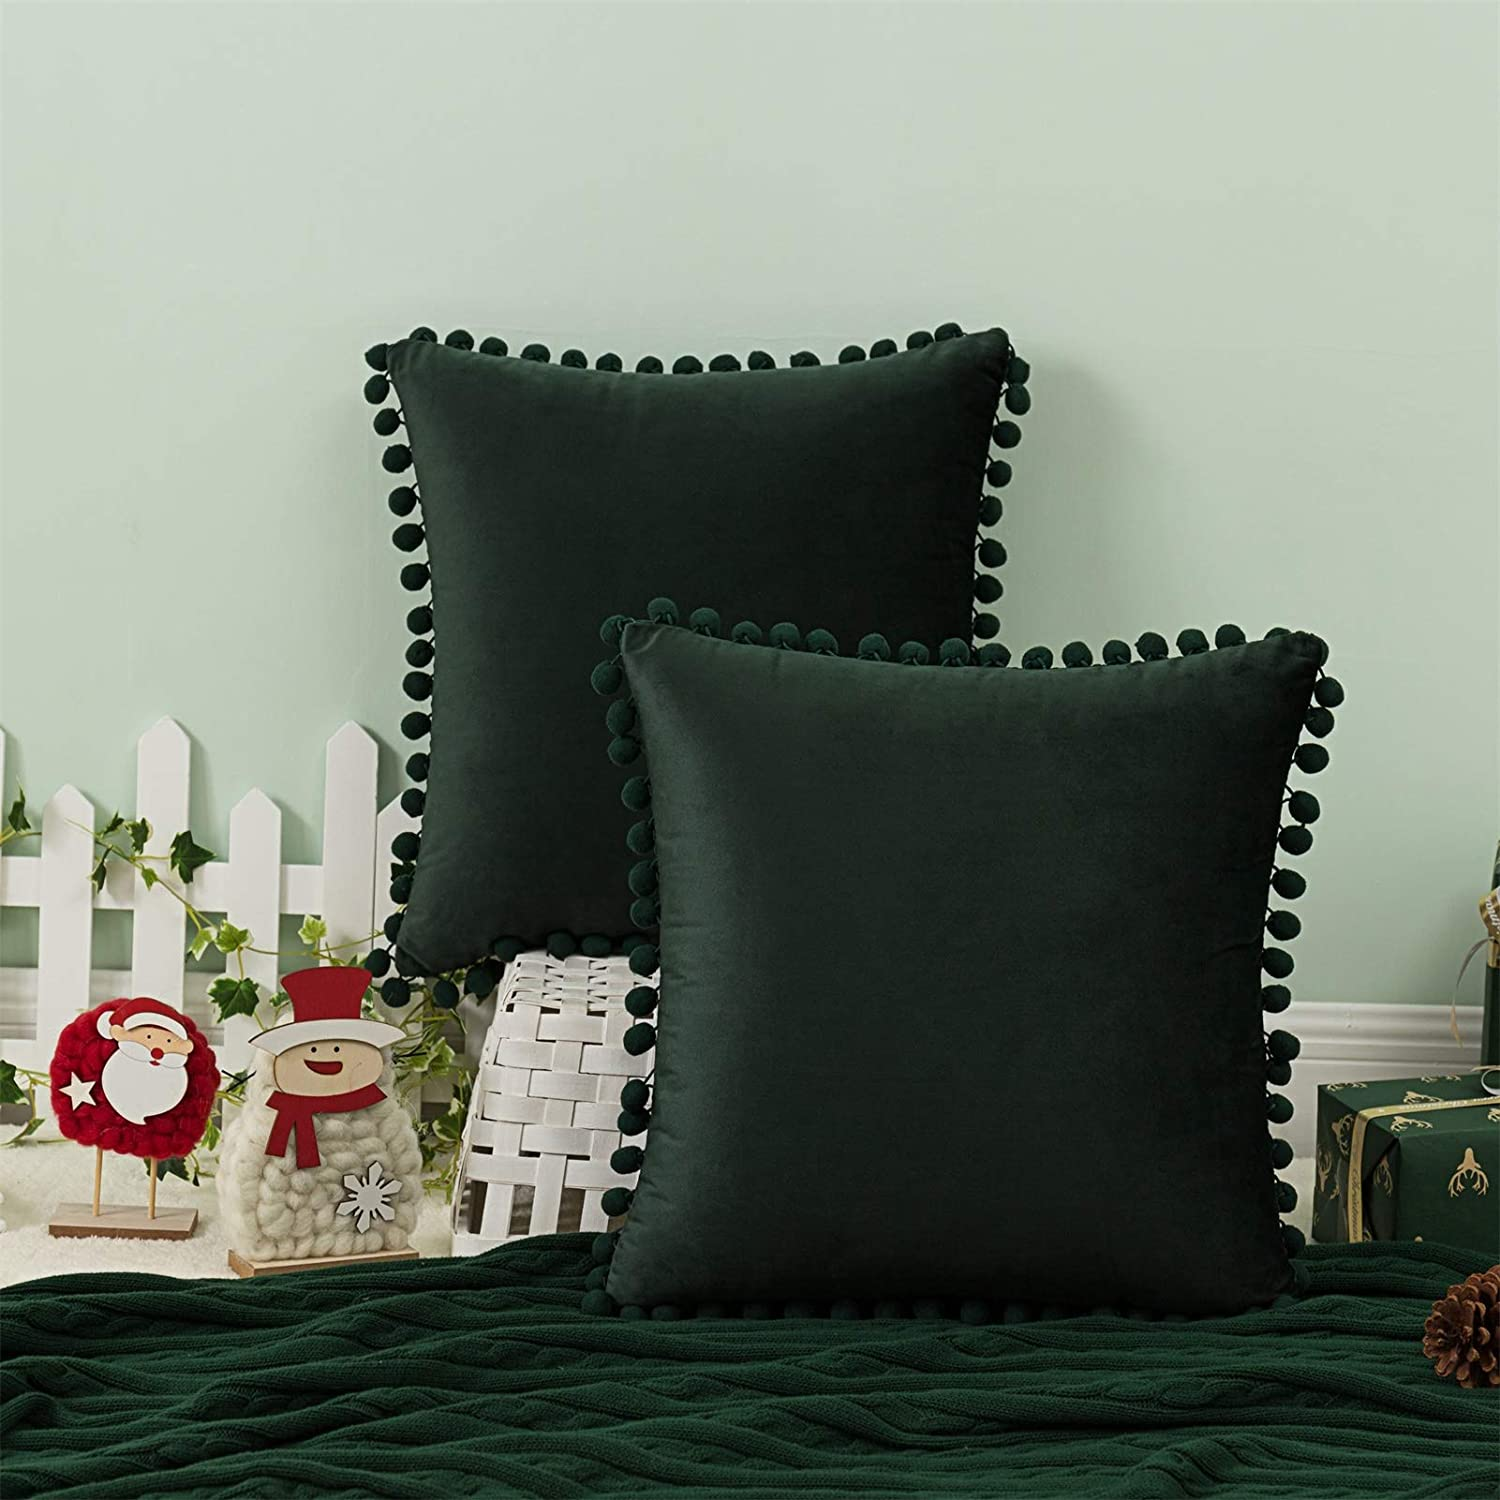 AQOTHES Christmas Decorative Throw Pillow Covers with Pom-poms, Velvet Sofa Soft Square Cushion Case for Home Holiday Decor Couch Bedroom (Dark Green,18x18 Inch, Set of 2)